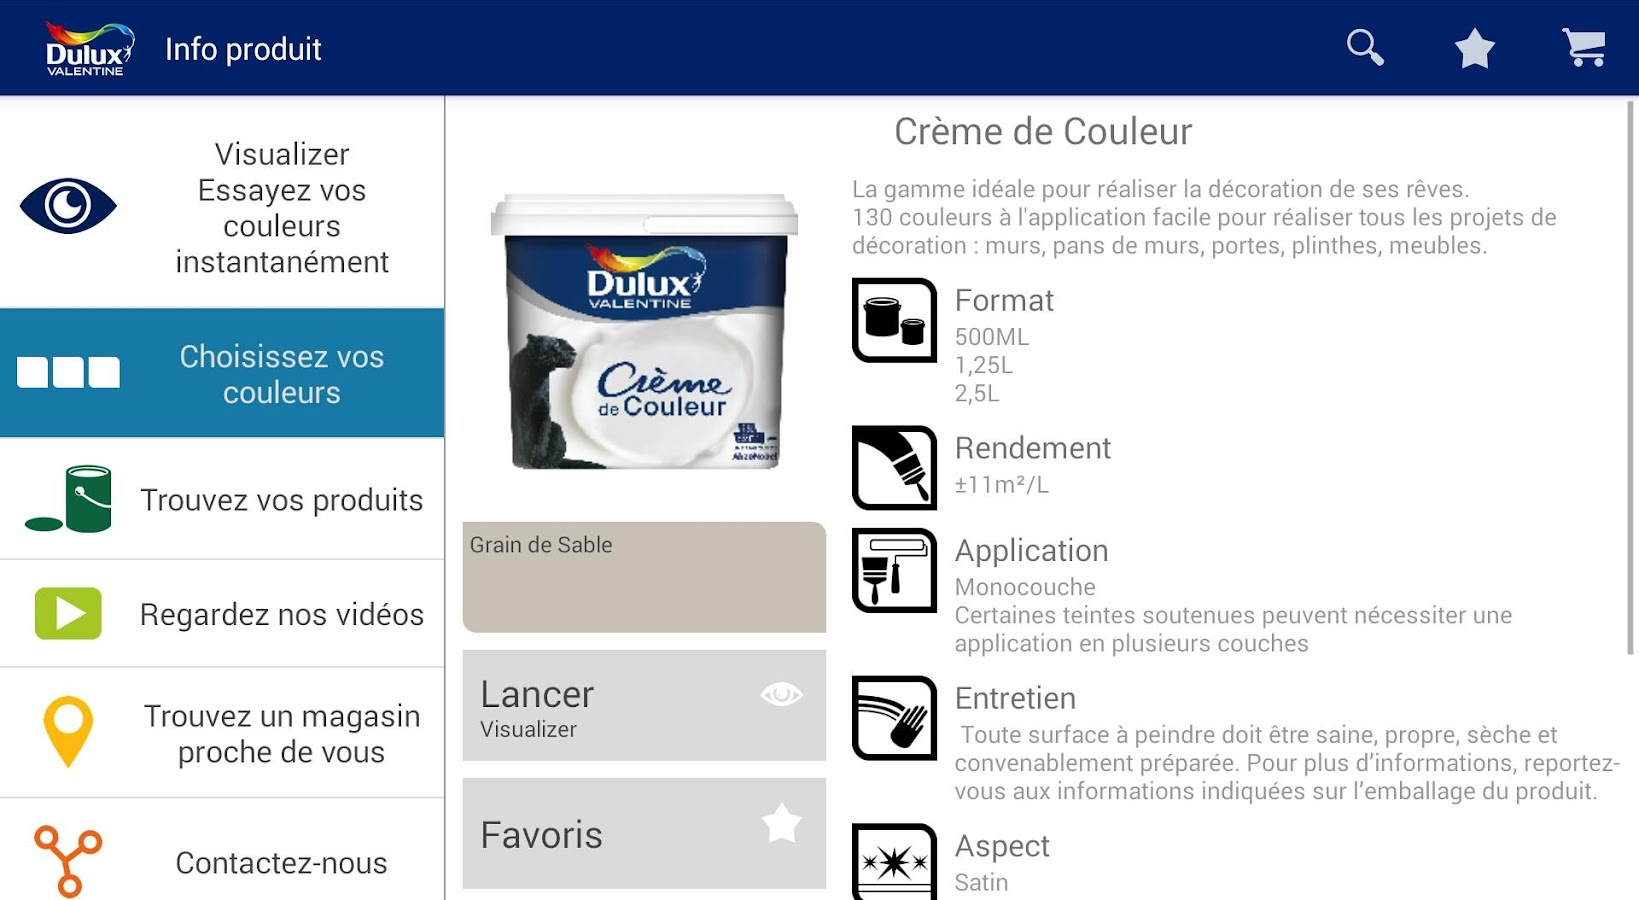 Dulux Valentine Visualizer Applications Android Sur